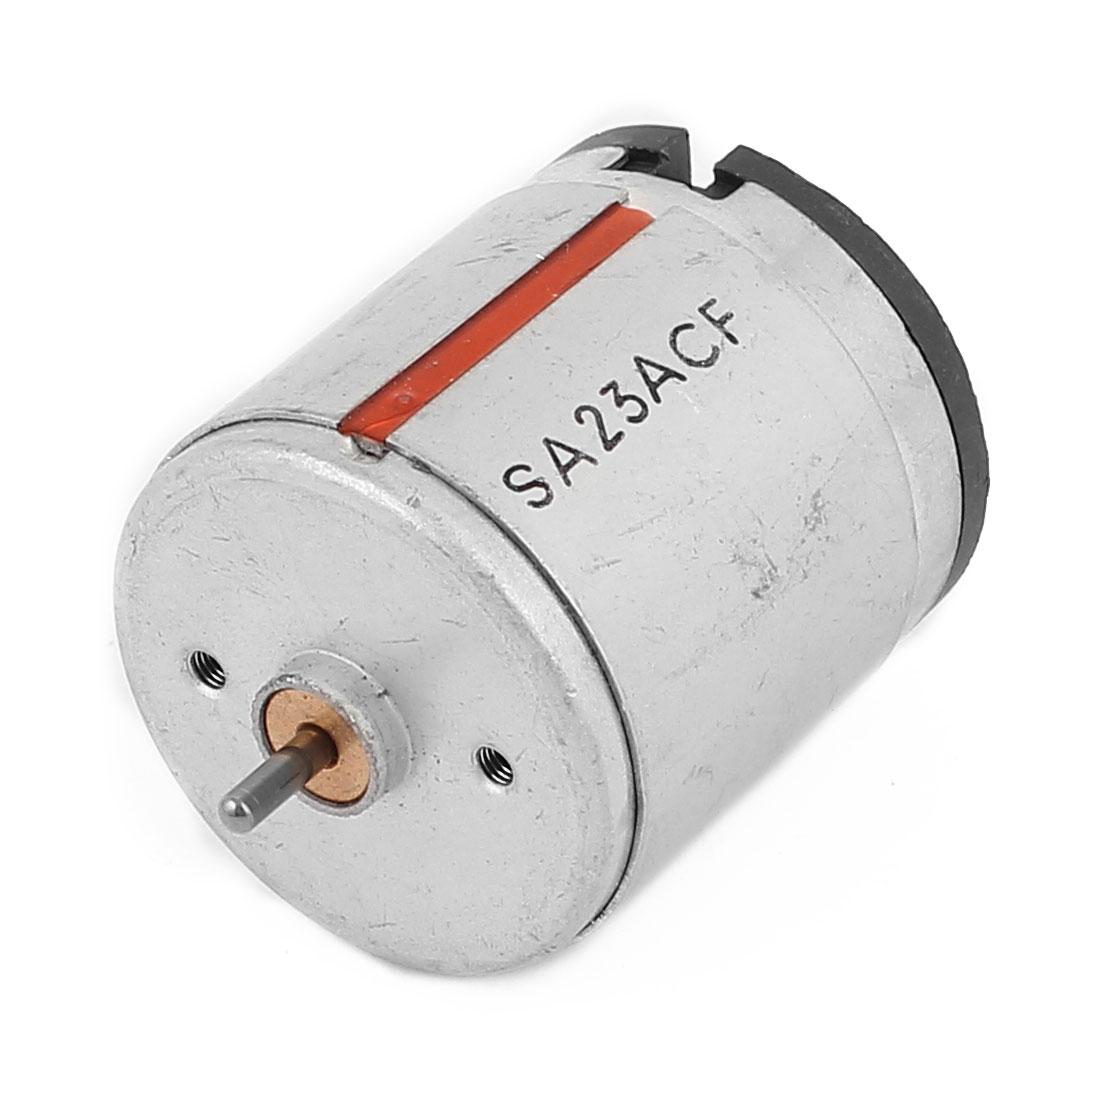 DC 24V 7700RPM 2.3mm Dia Shaft 2 Terminal Cylindrical Electrical DC Motor